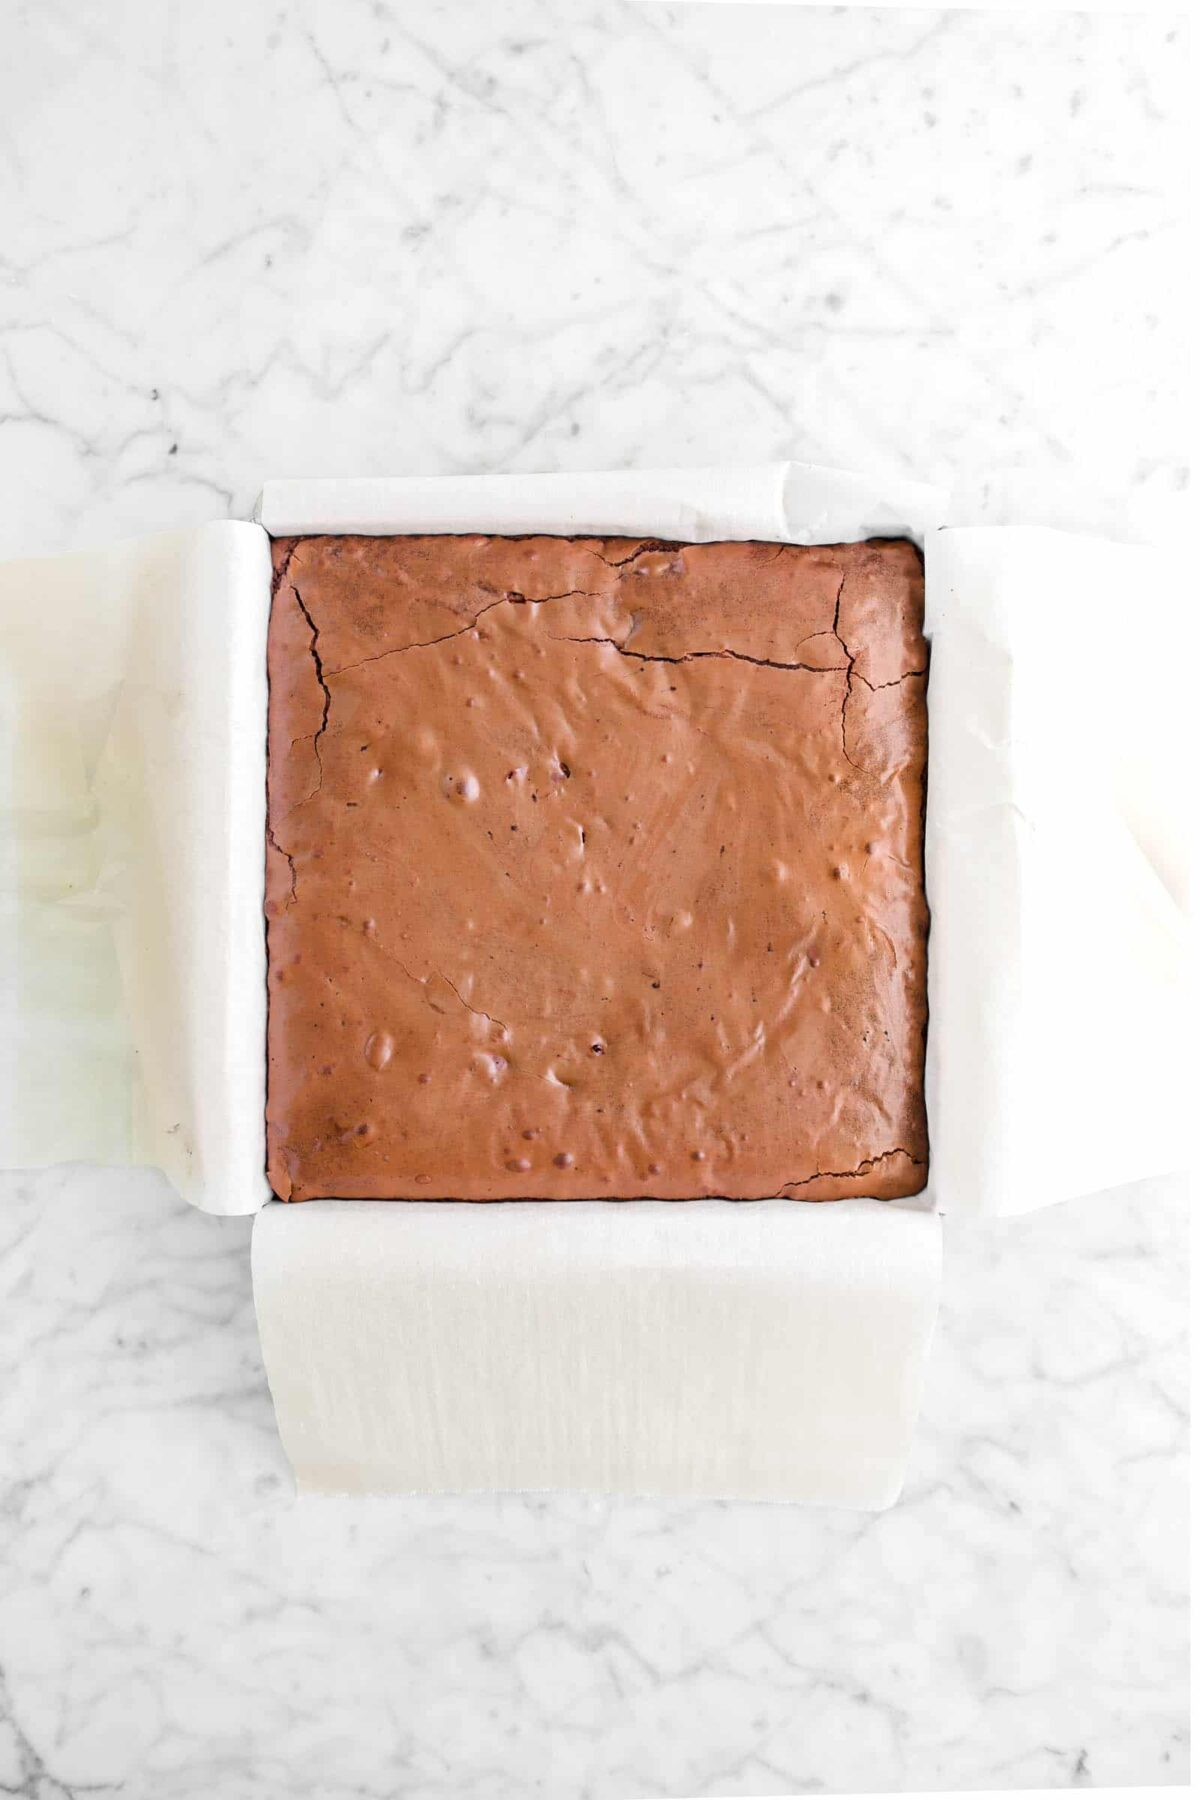 baked brownies in lined rectangular pan